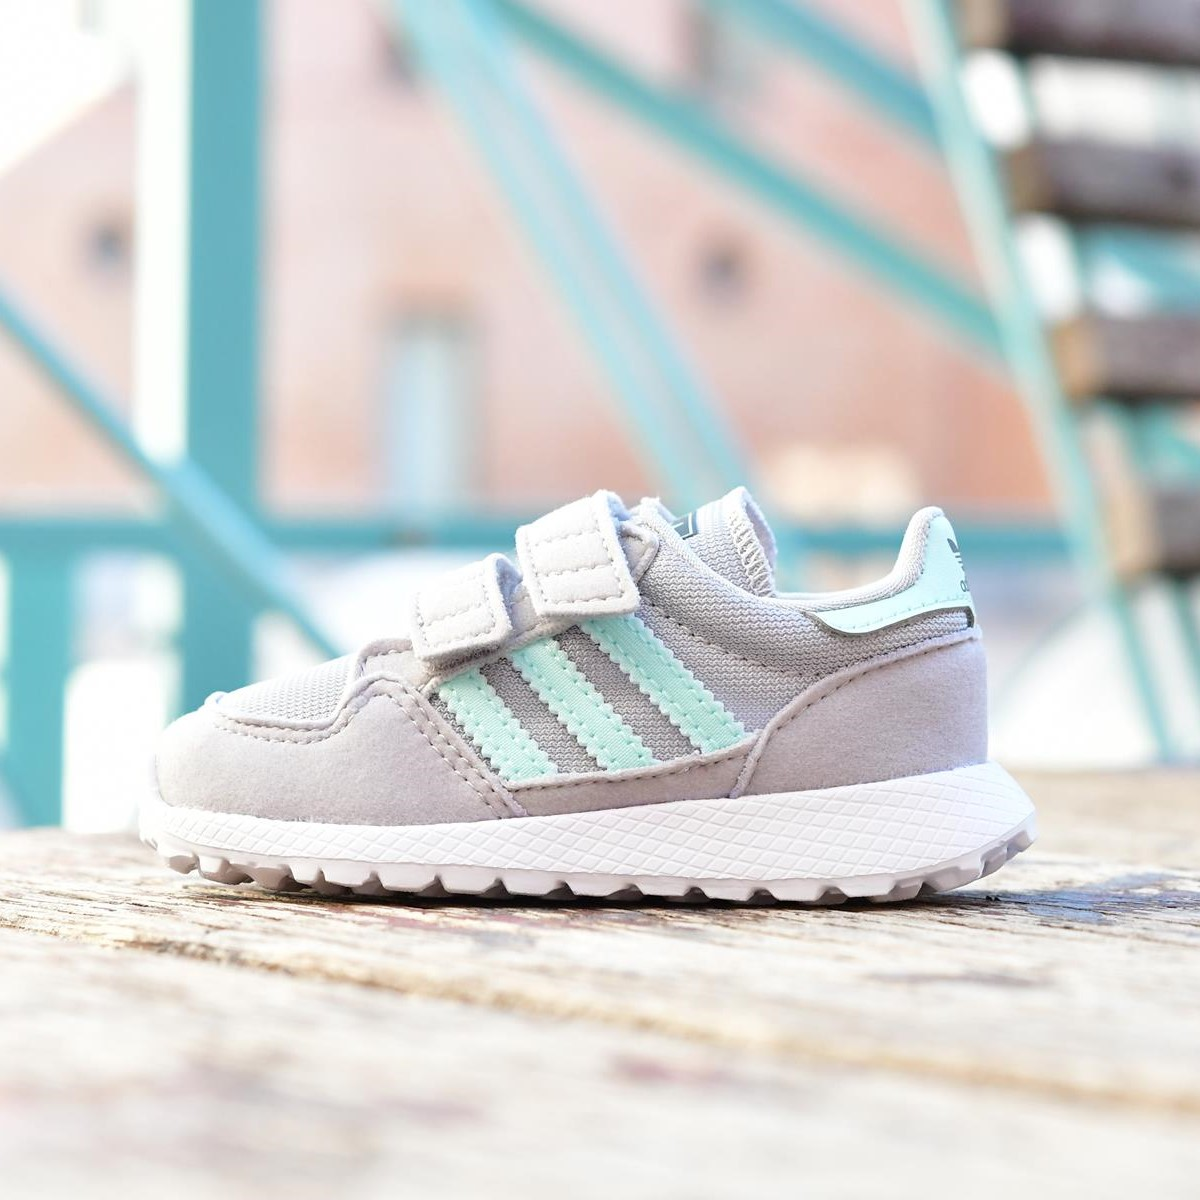 CG6809_AmorShoes-Adidas-Originals-Forest-Grove-Cf-i-oregon-niño-niña-gris-claro-grey-two-rayas-verde-menta-mint-CG6809-home